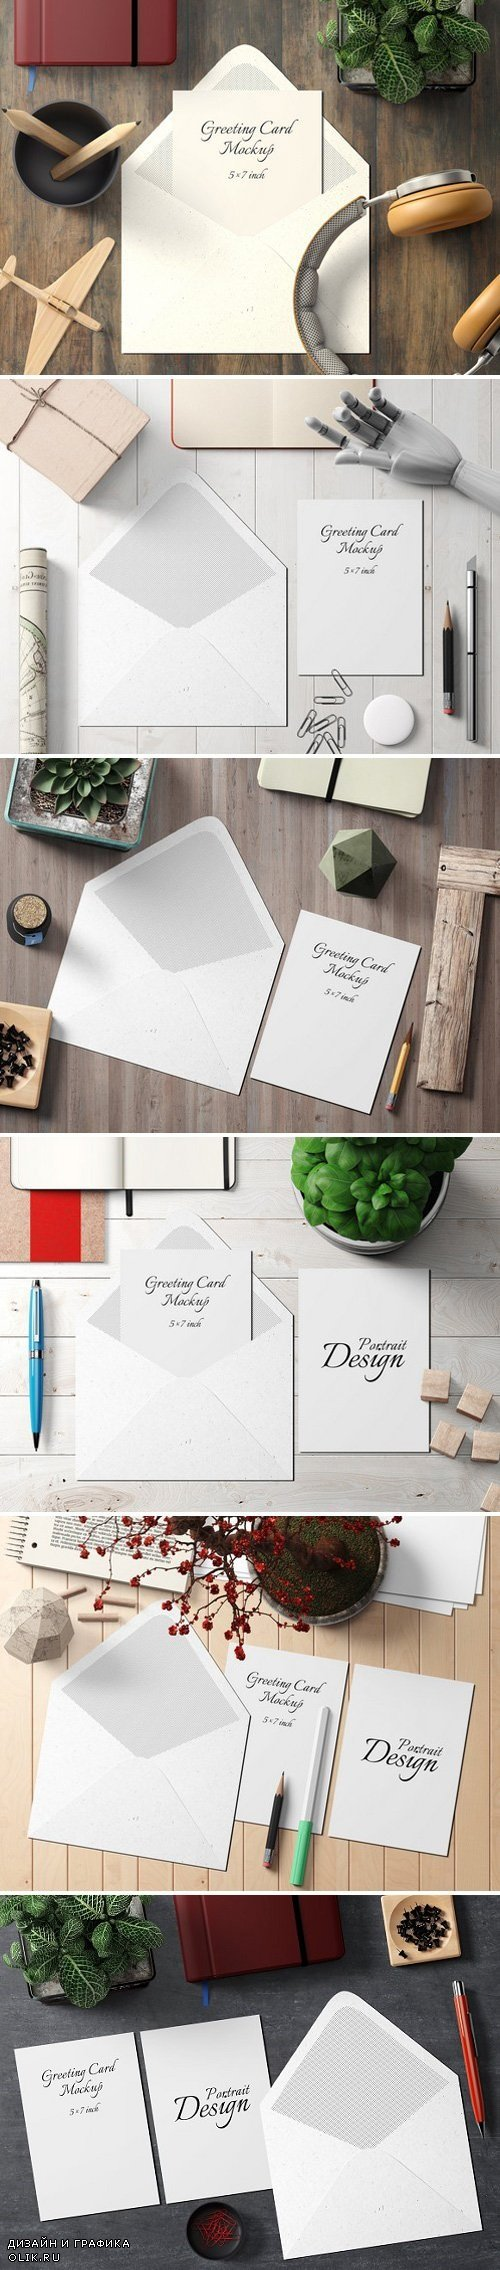 5x7 Greeting Card Mockup Pack - 1 1835294